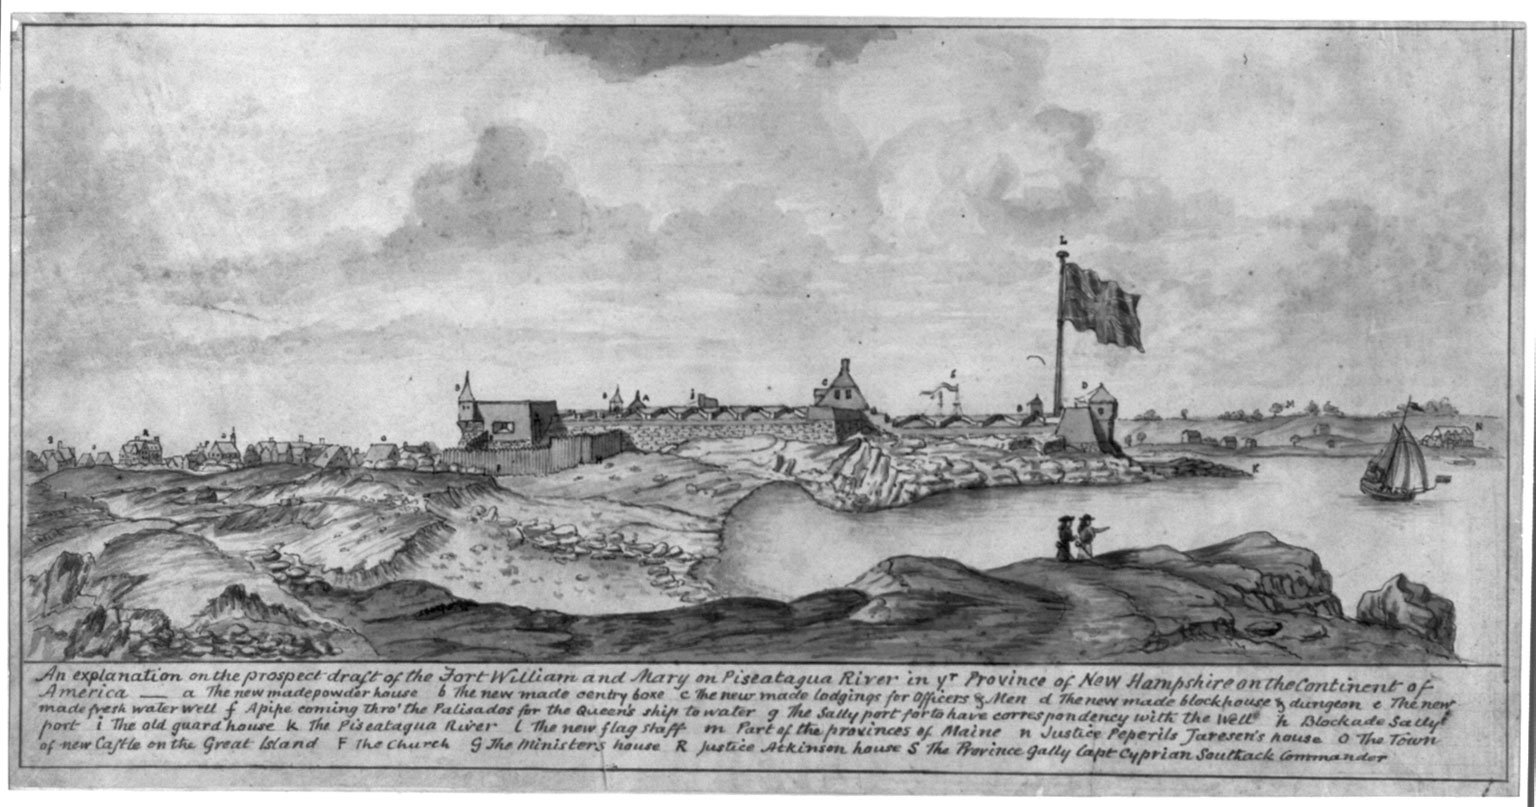 A black and white drawing shows a view of a landscape. A river enters from the right side, and land surrounds it in a bay. There is a large sailboat on the river. In the center is a series of buildings with some towers connected by walls. There is a large flag hanging over the right side of the walls. A village is further away on the left side. Two figures stand on rocks in the foreground. At the bottom is script writing  identifying various features in the drawing.